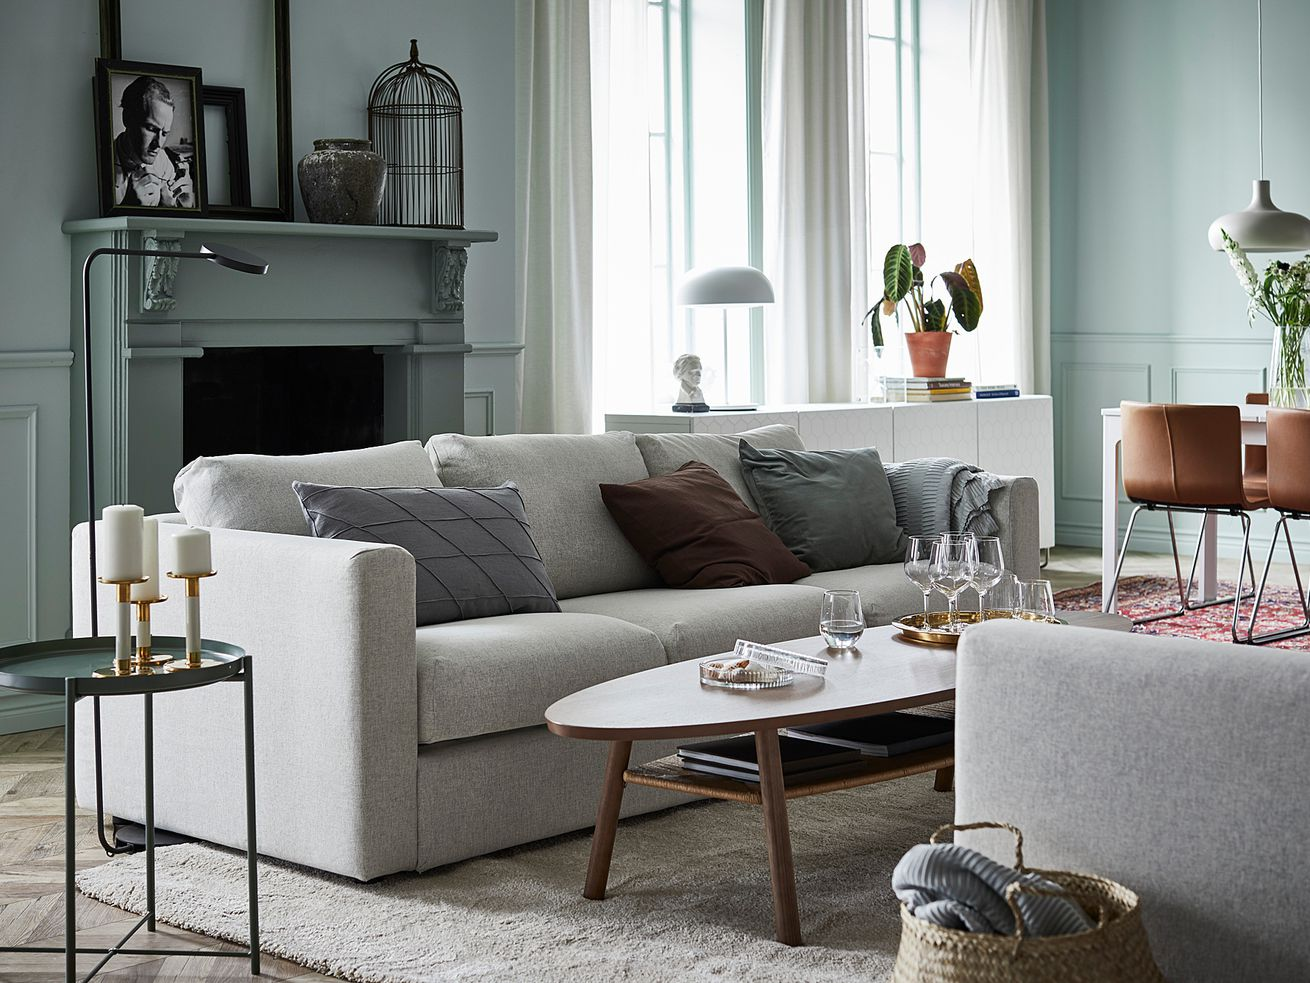 A living room features a white couch with throw pillows, light teal walls, a coffee table, and breezy white curtains.